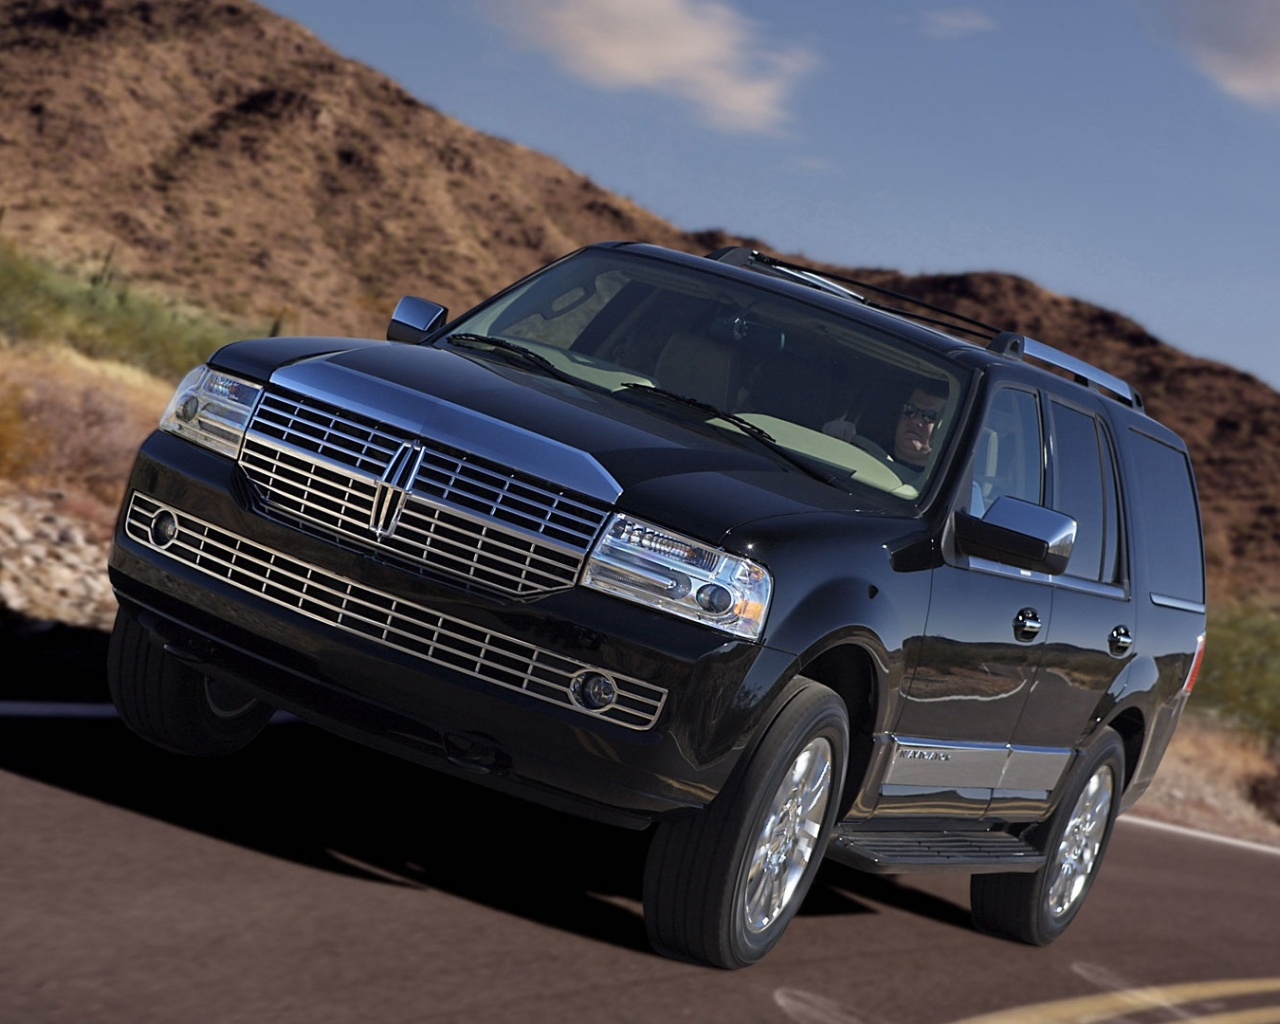 click to free download the wallpaper--Top Cars Image, Lincoln Navigator in the Run, Impressive and Decent Car 1280X1024 free wallpaper download